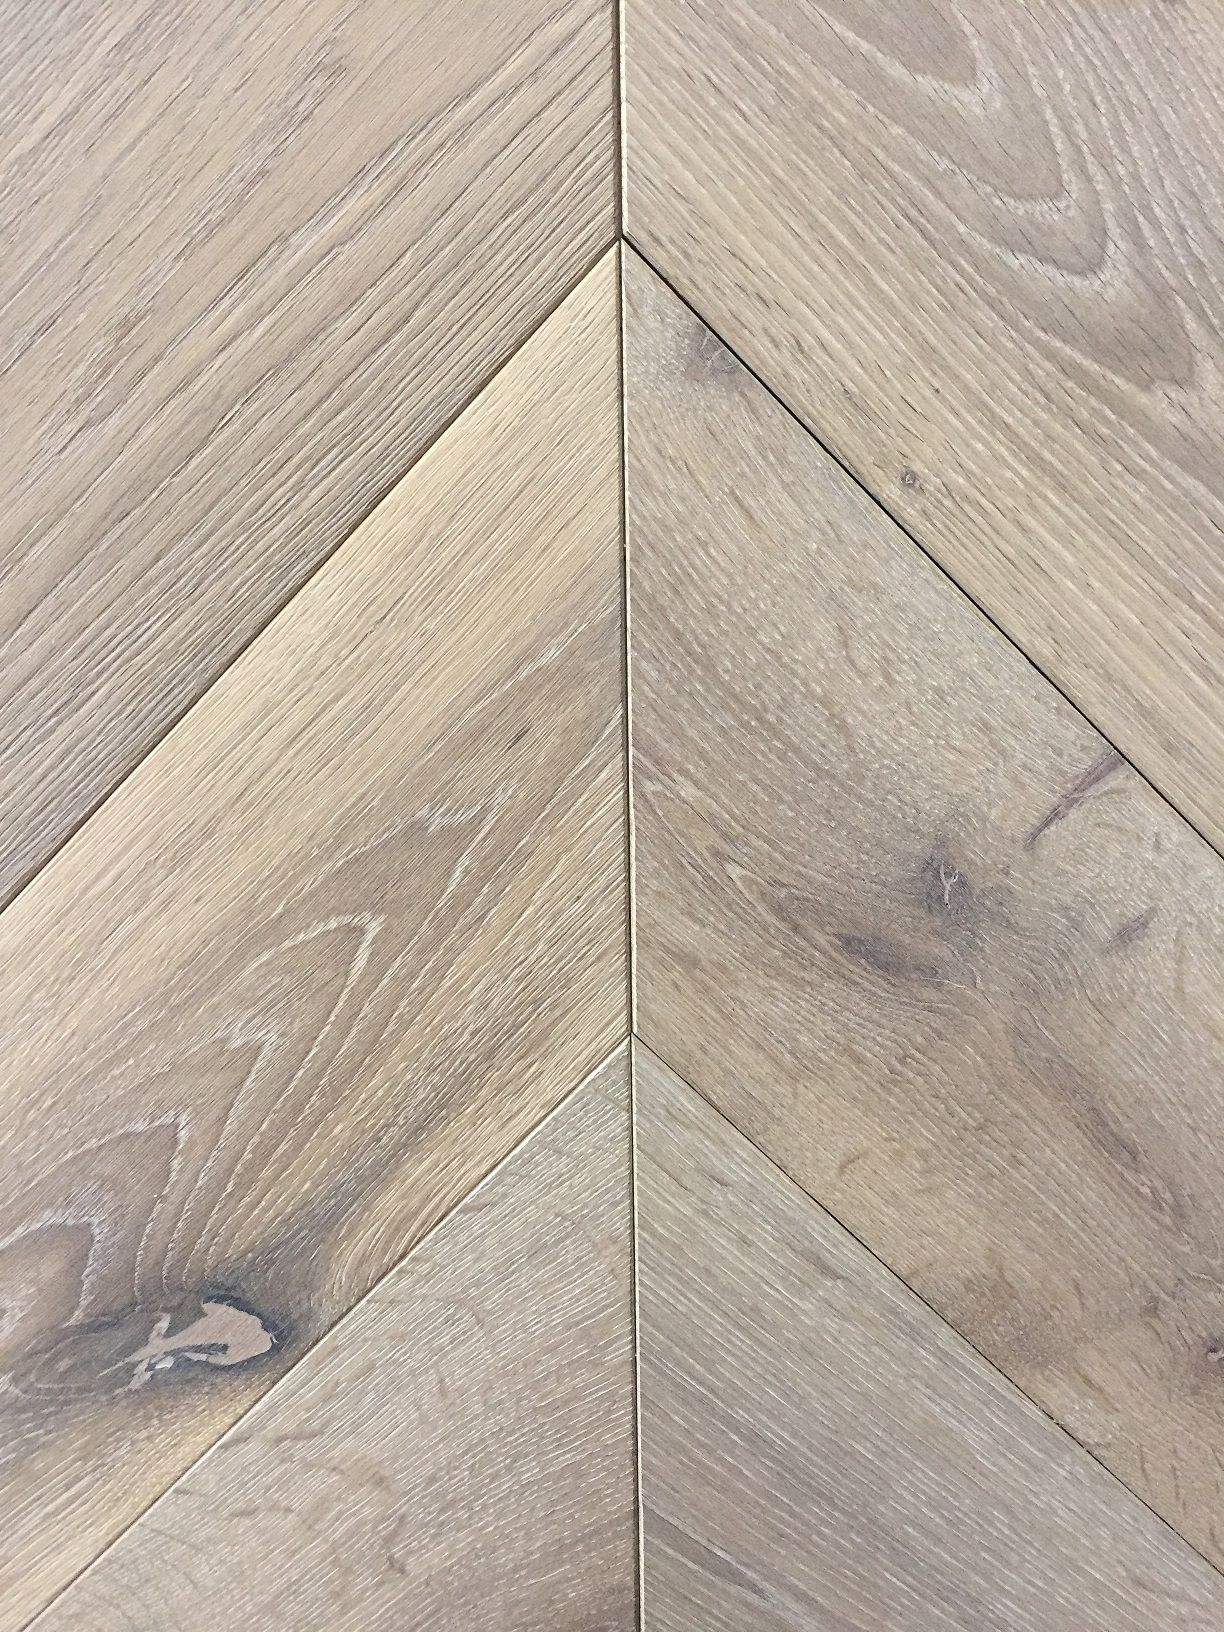 Chevron Engineered Oak Parquet Flooring Light Brushed Special Treatment Grey Oil Free Wood Samples Sent Daily Delivery Within